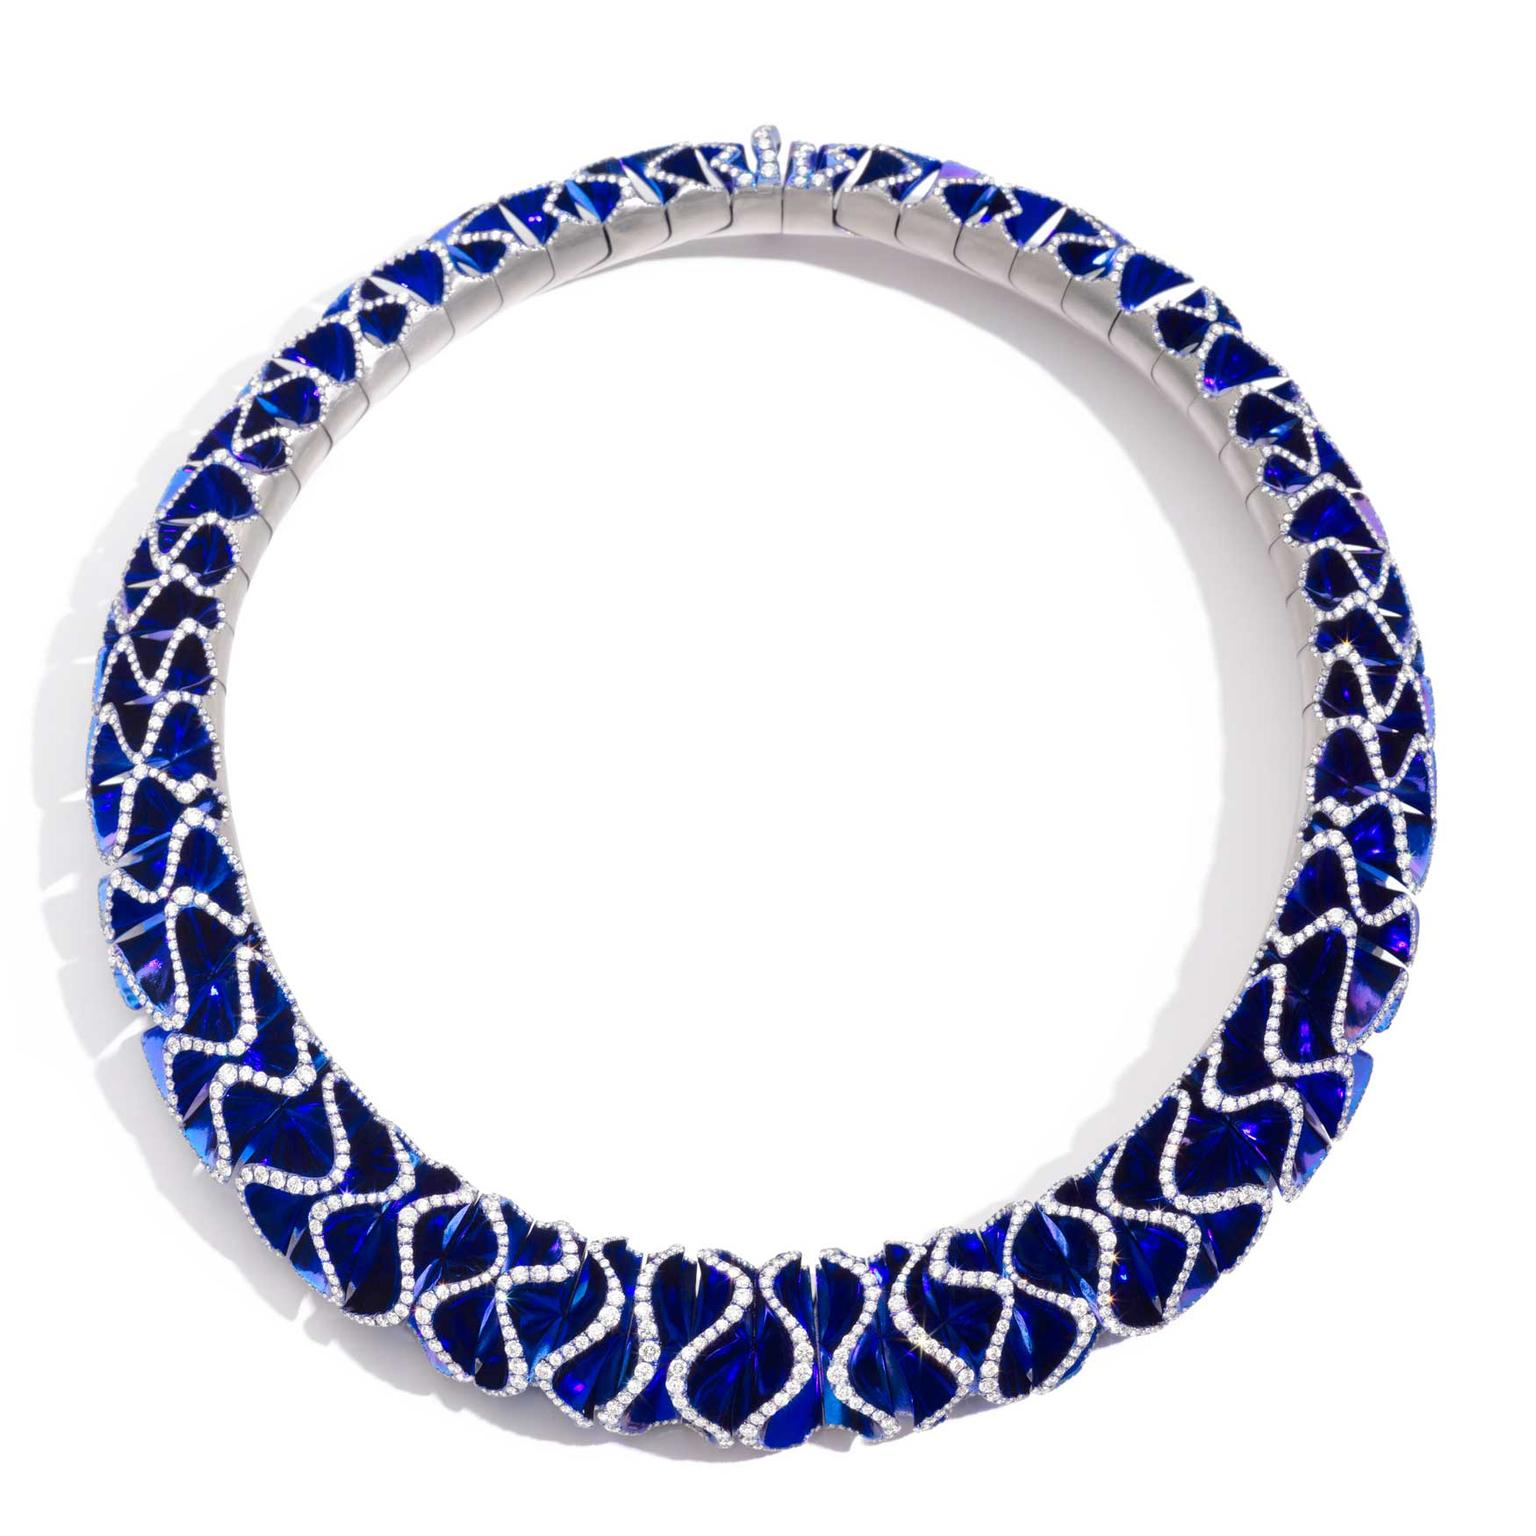 Vhernier Blue Velvet necklace